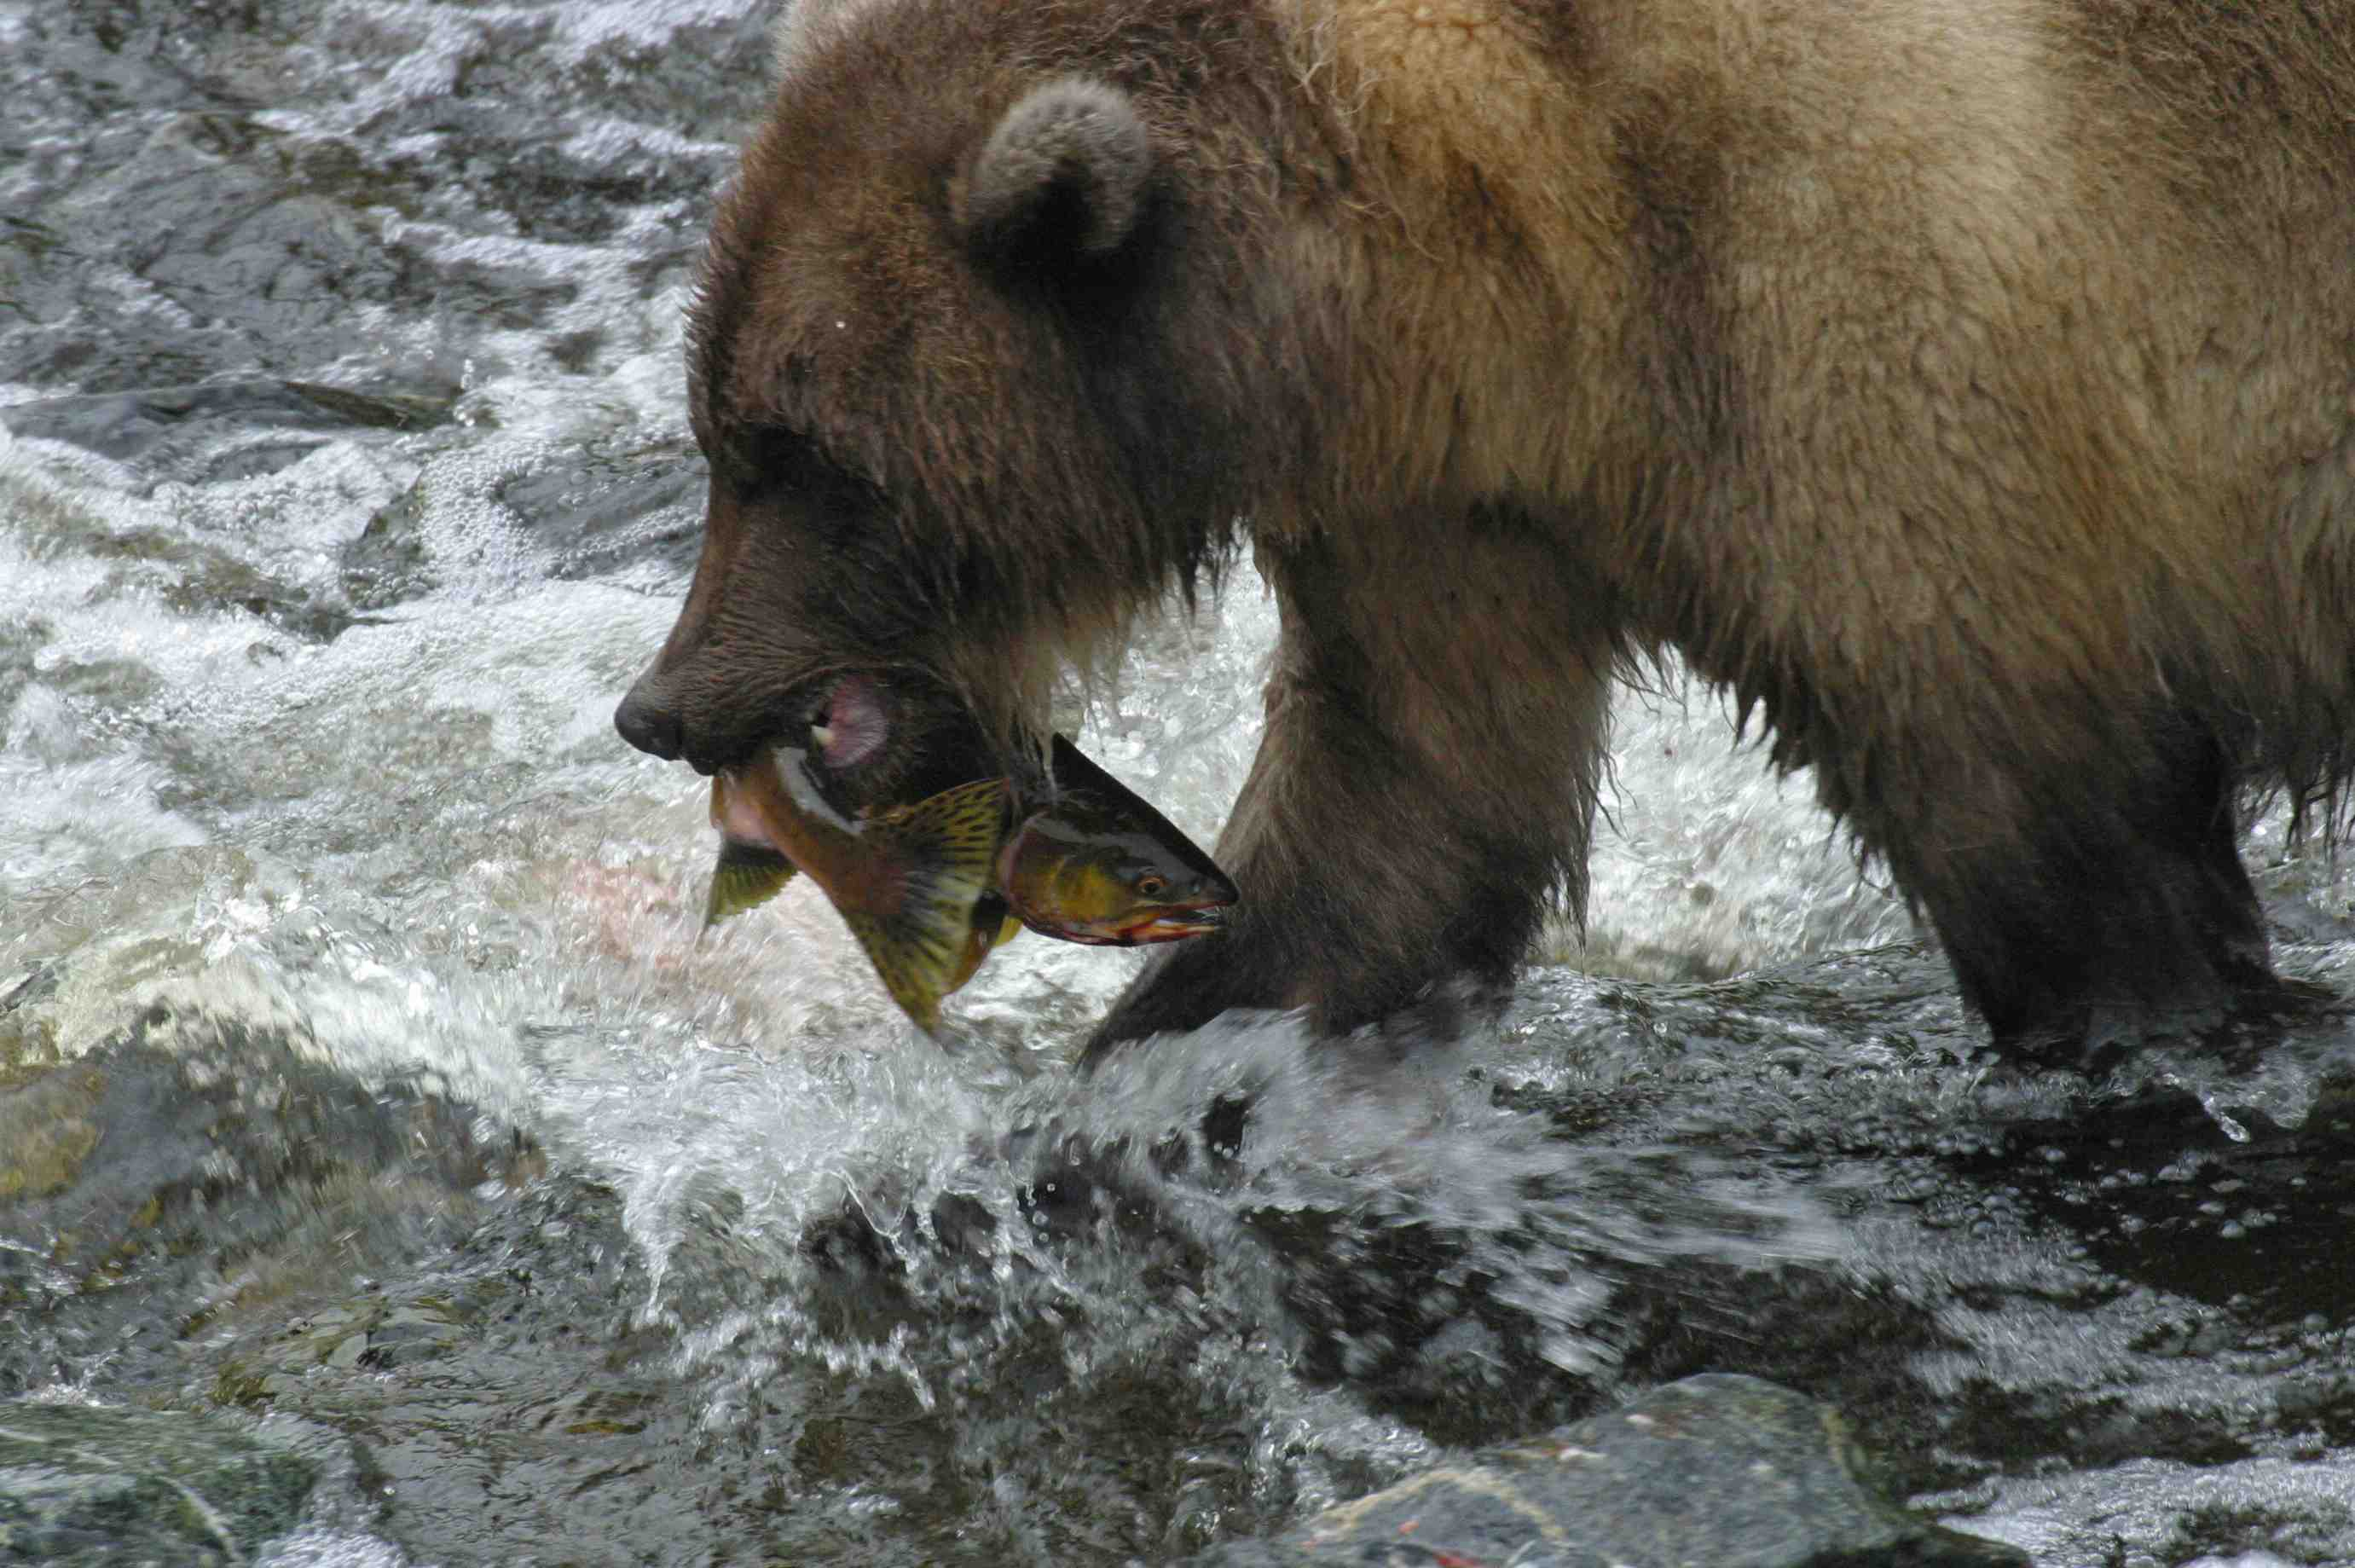 bear-catching-salmon-low-alex-morton